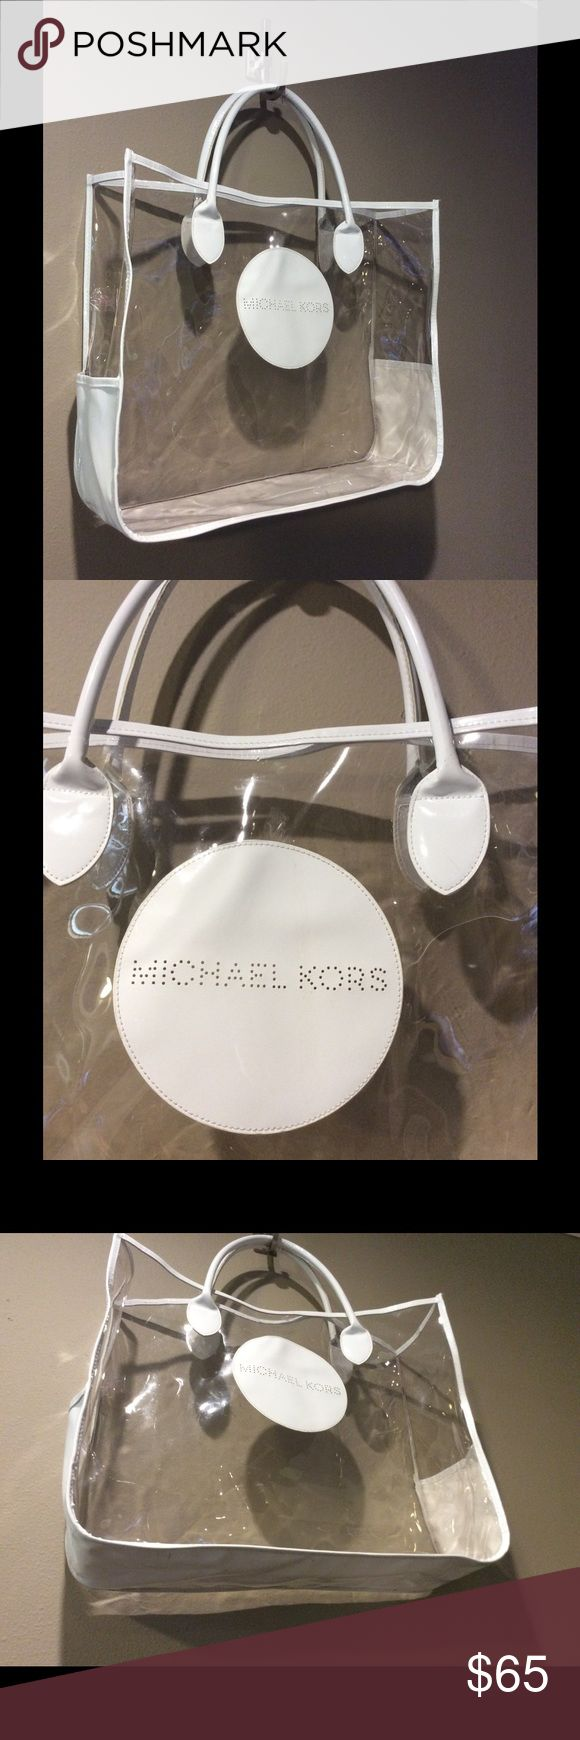 """MICHAEL KORS TRANSPARENT PLASTIC TOTE, XL This  extra large Michael Kors tote will carry to the beach, to the spa or to work. Measurements:18""""x 15.5"""" x 5.5"""" Michael Kors Bags Totes"""